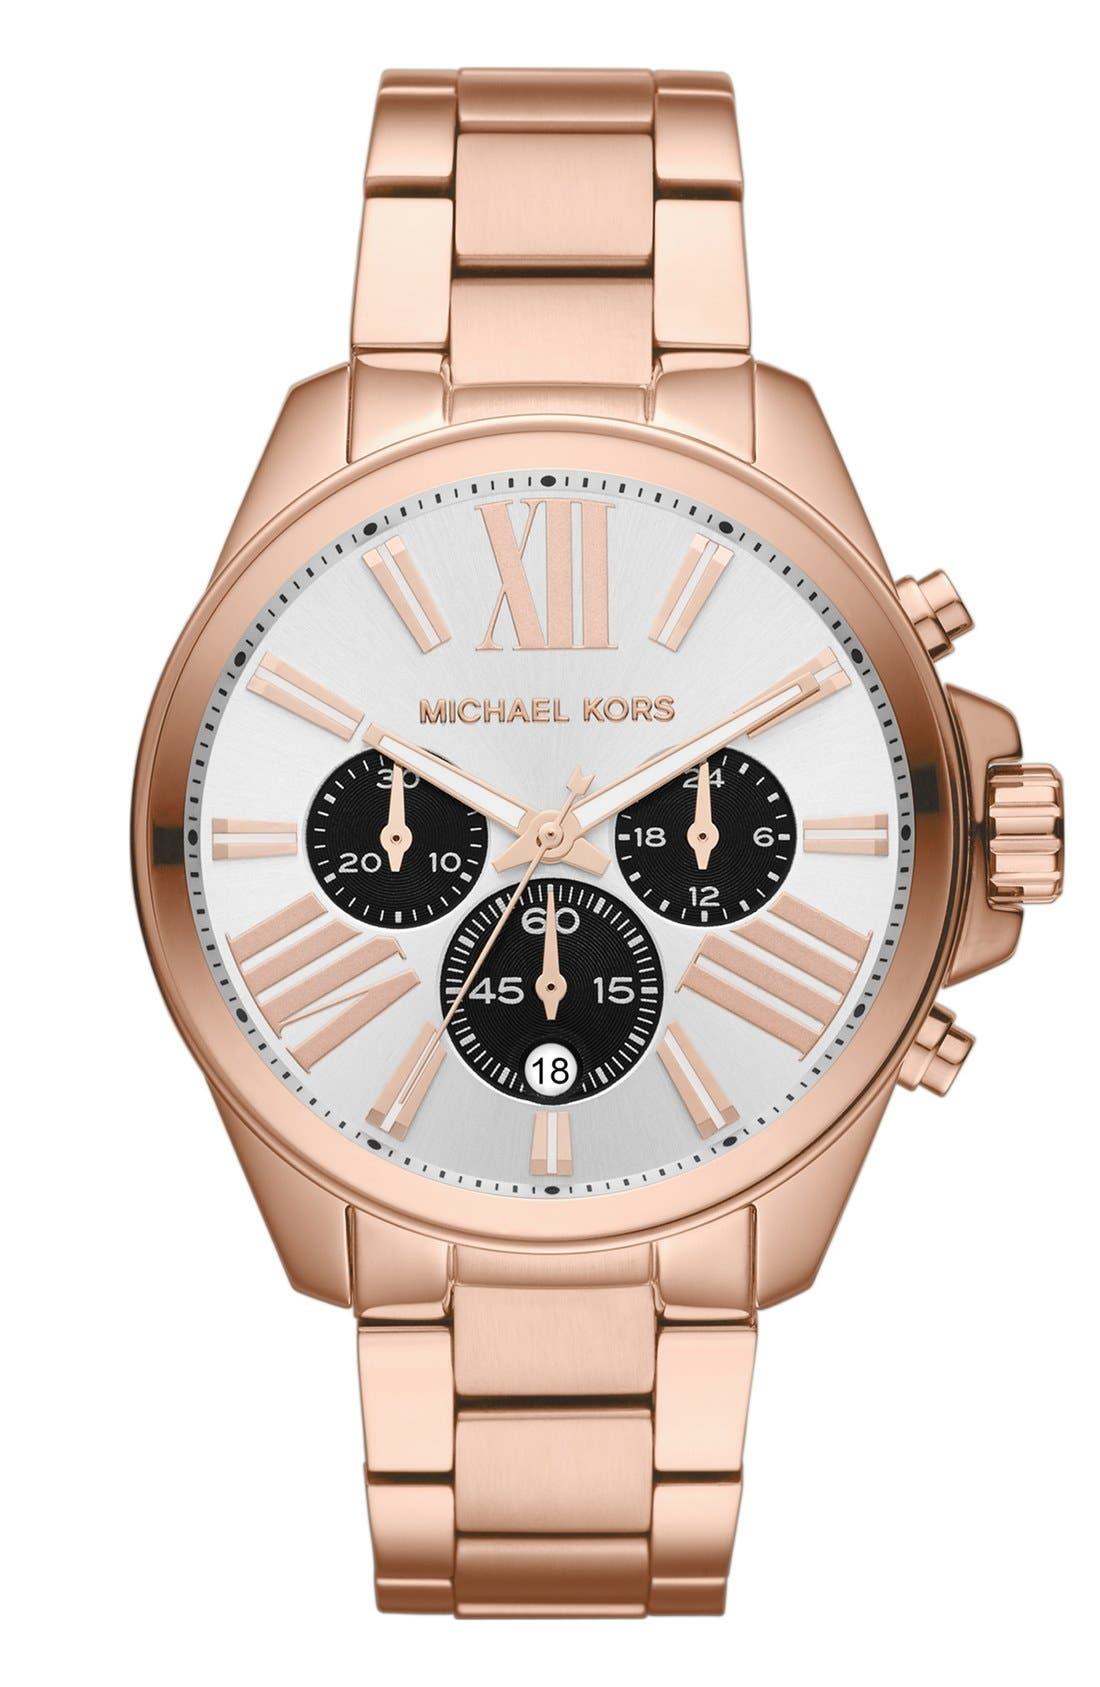 Main Image - Michael Kors 'Wren' Chronograph Bracelet Watch, 42mm